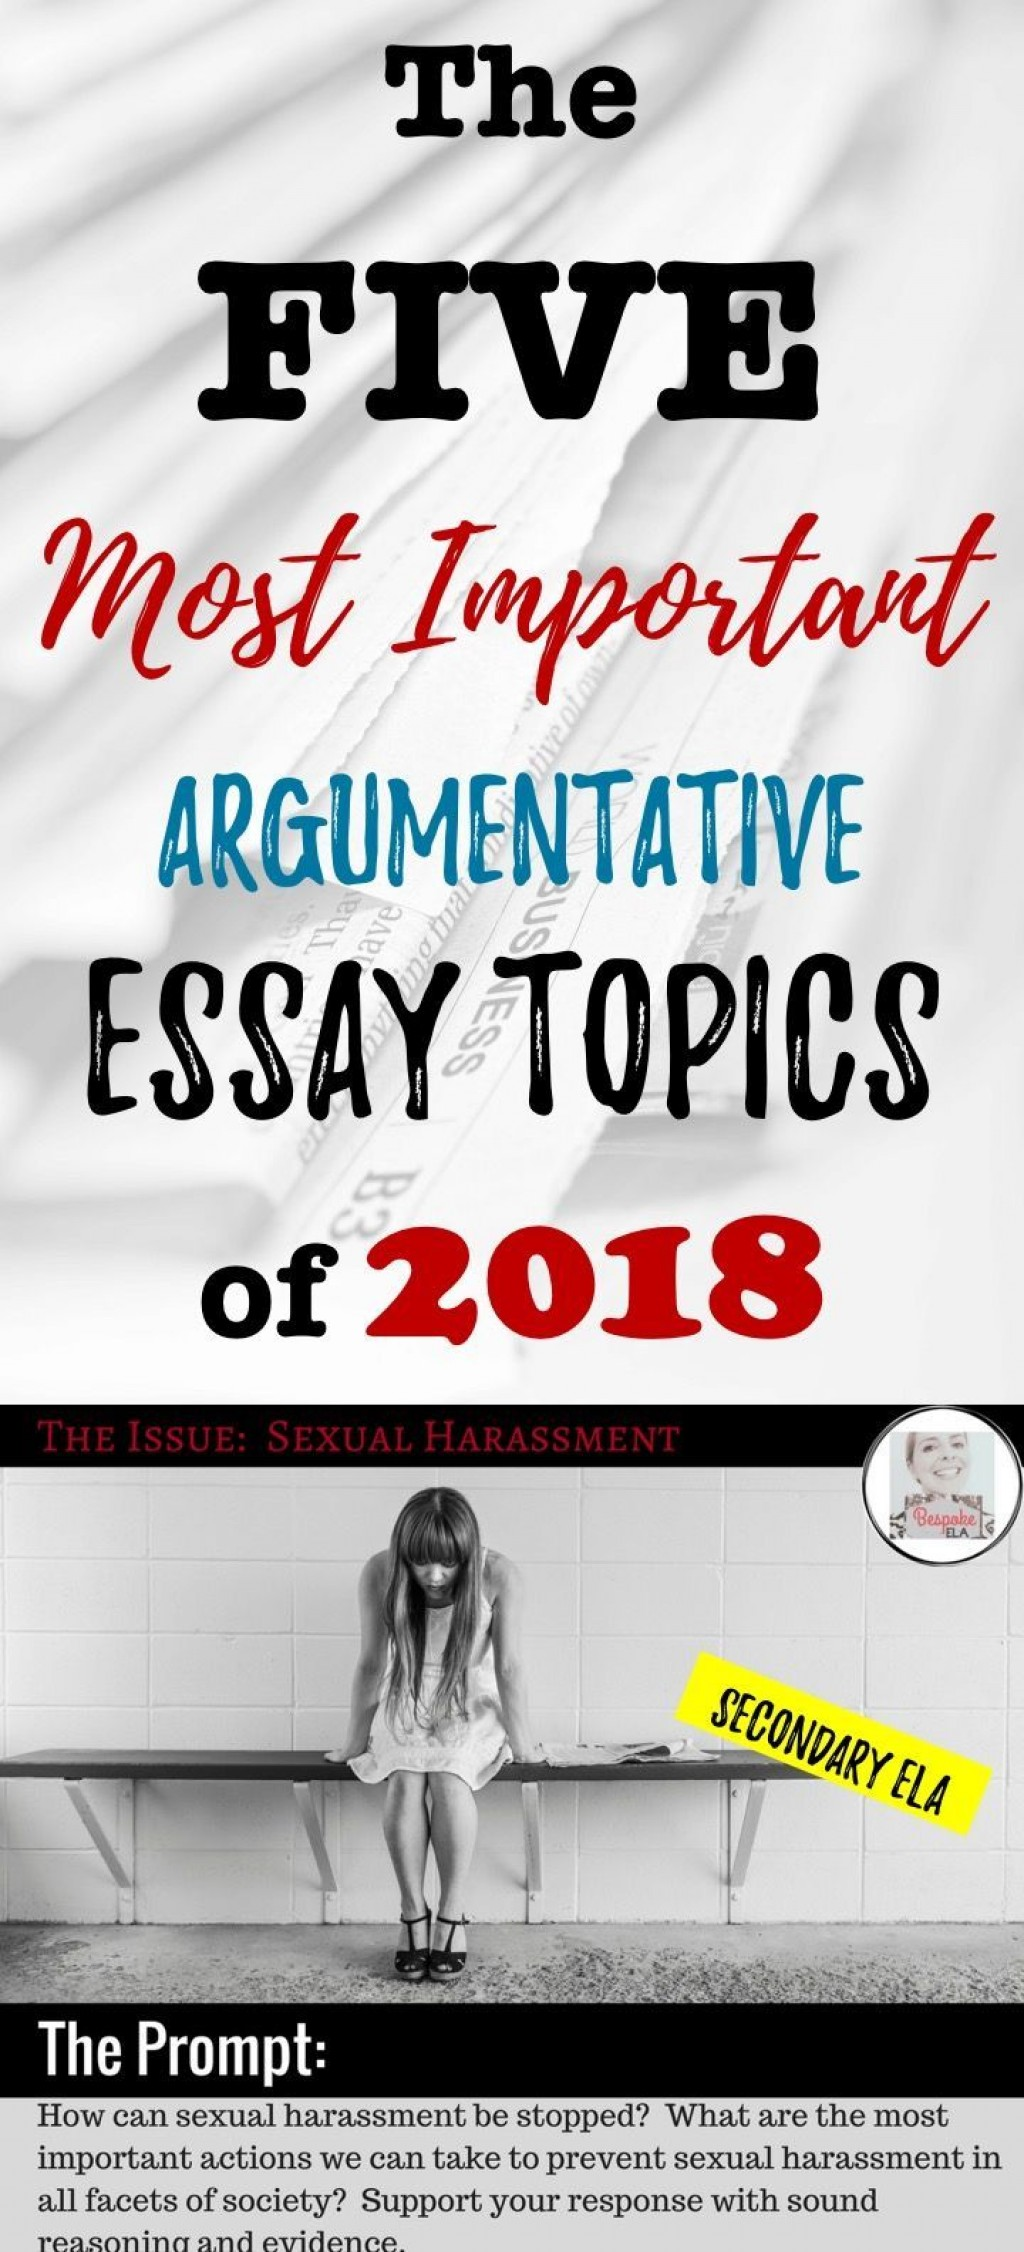 003 Research Paper Argumentative Essay Topics Remarkable 2018 In The Philippines Easy Middle School Large